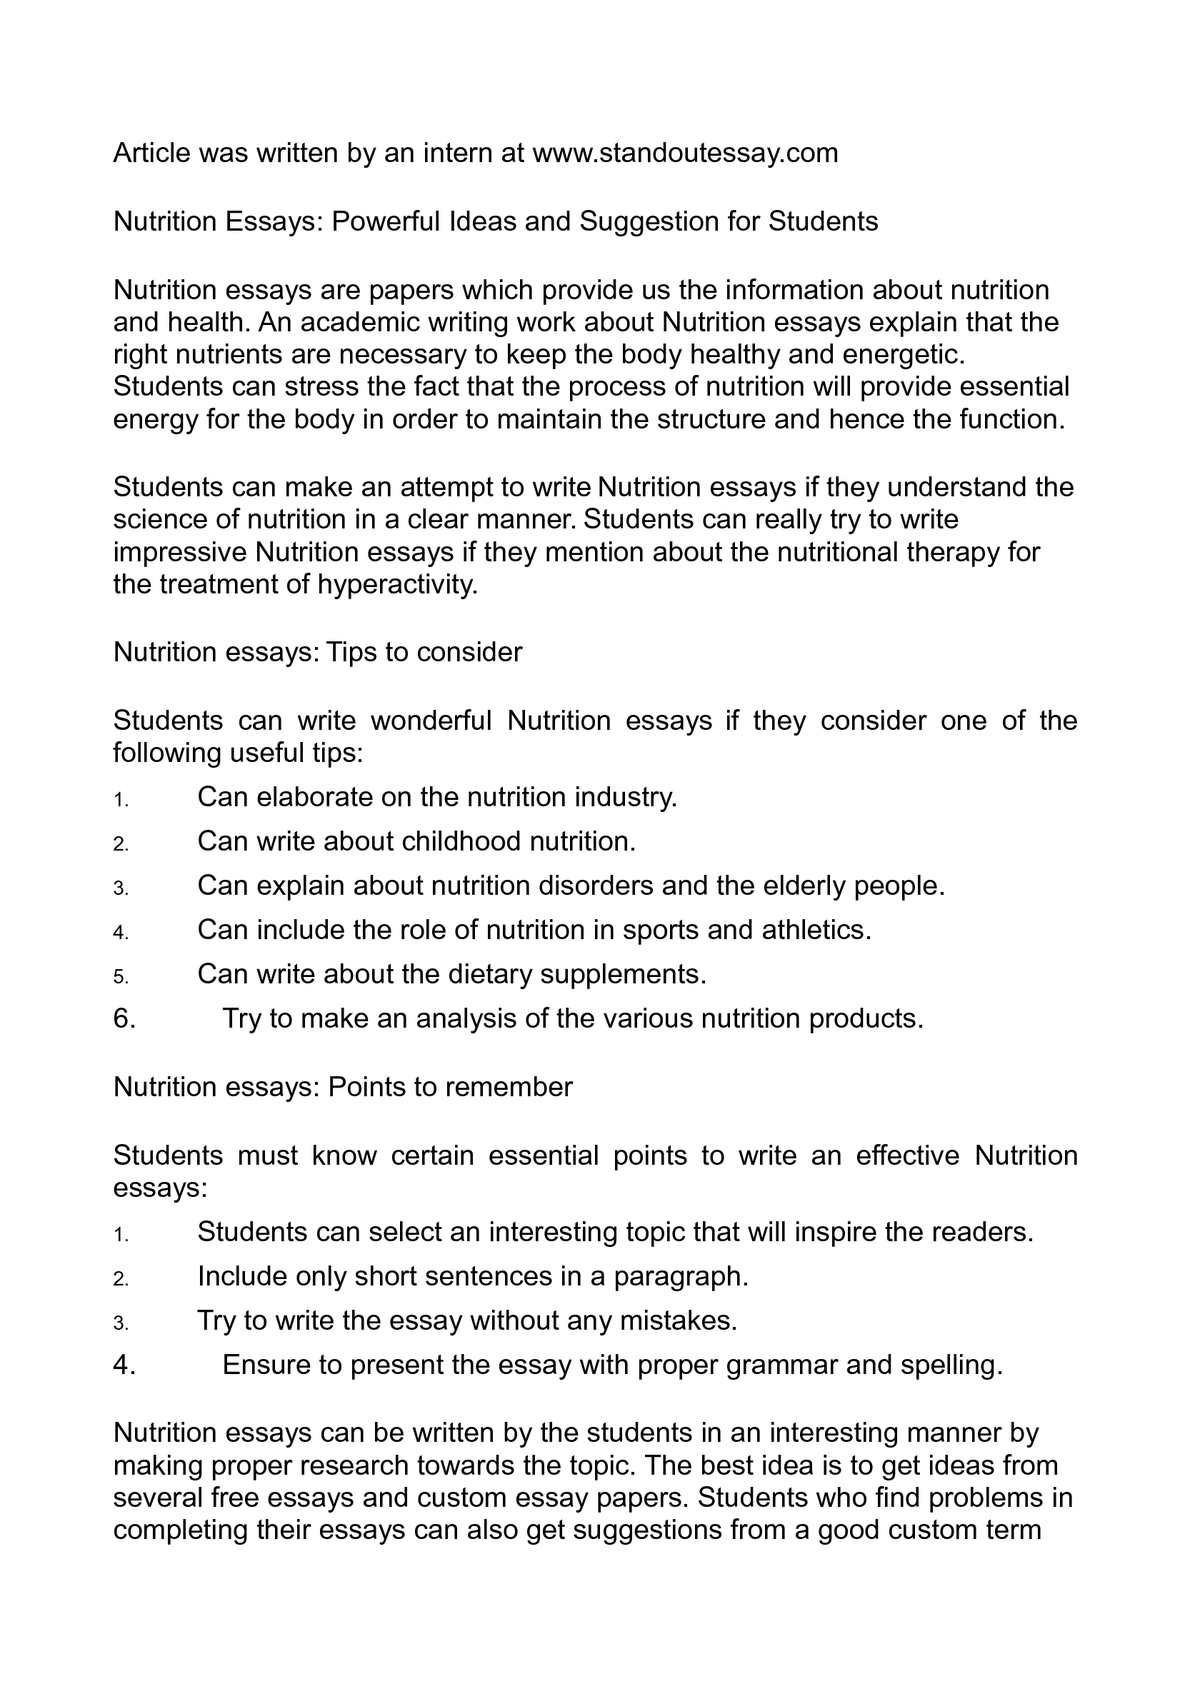 Essay Vs Research Paper Nutrition Essays How Do I Write A Thesis Statement For An Essay also Political Science Essays Nutrition Essays  Elitamydearestco Science Vs Religion Essay